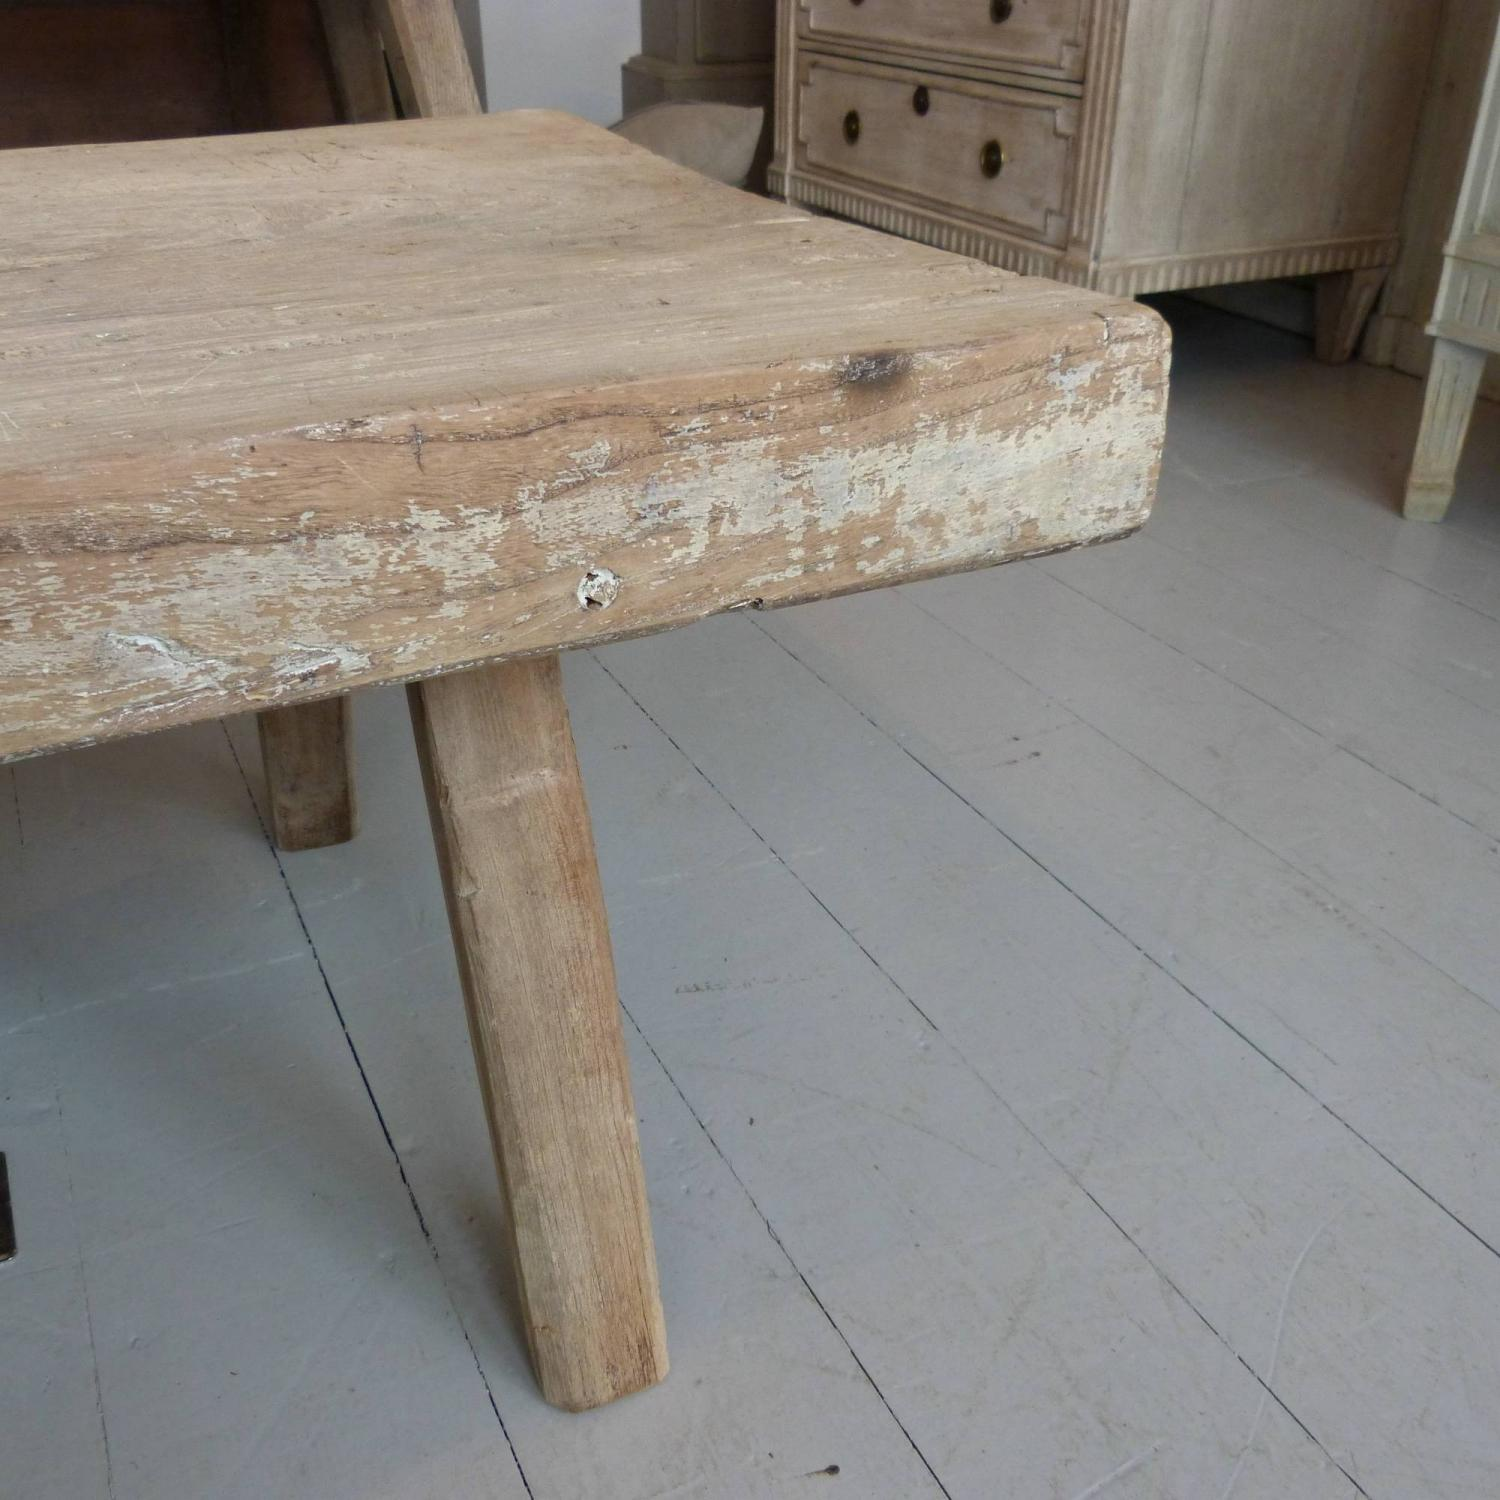 ... 19TH CENTURY BLEACHED OAK PIG BENCH COFFEE TABLE   Picture 5